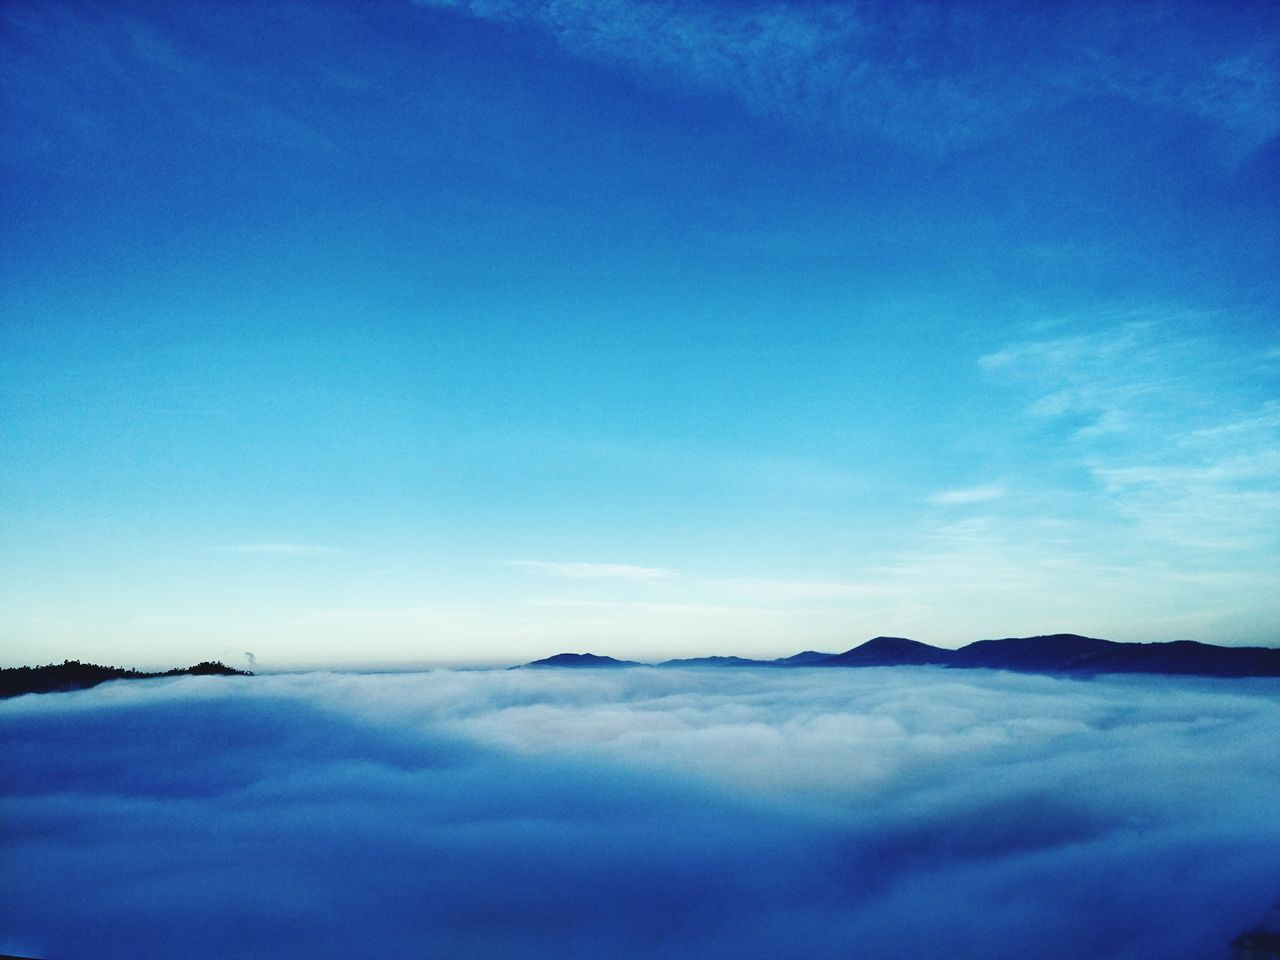 scenics, blue, tranquility, beauty in nature, nature, sky, tranquil scene, cloud - sky, no people, outdoors, day